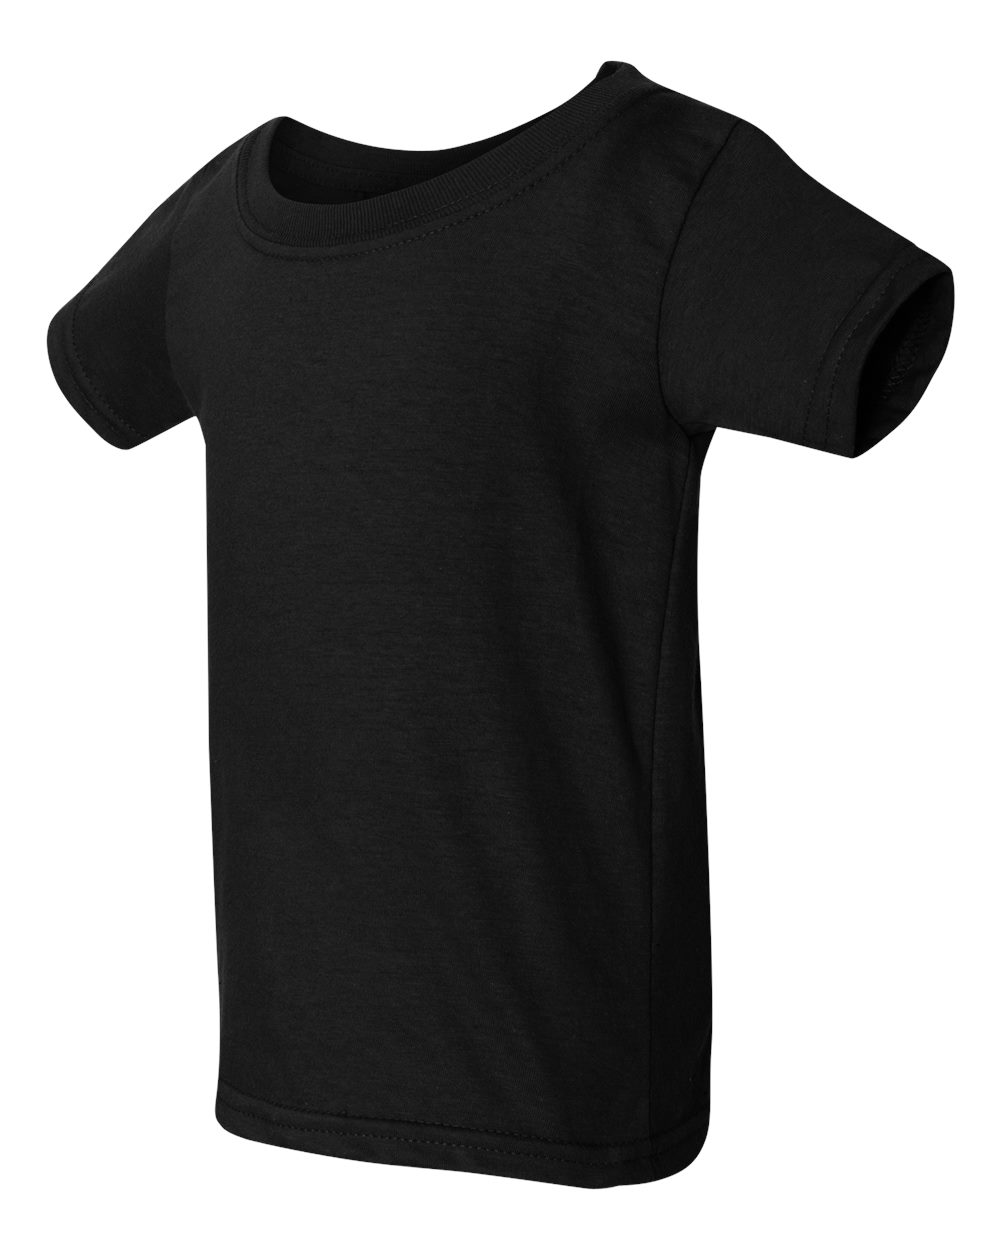 Gildan Toddler 64500P T-shirt Black